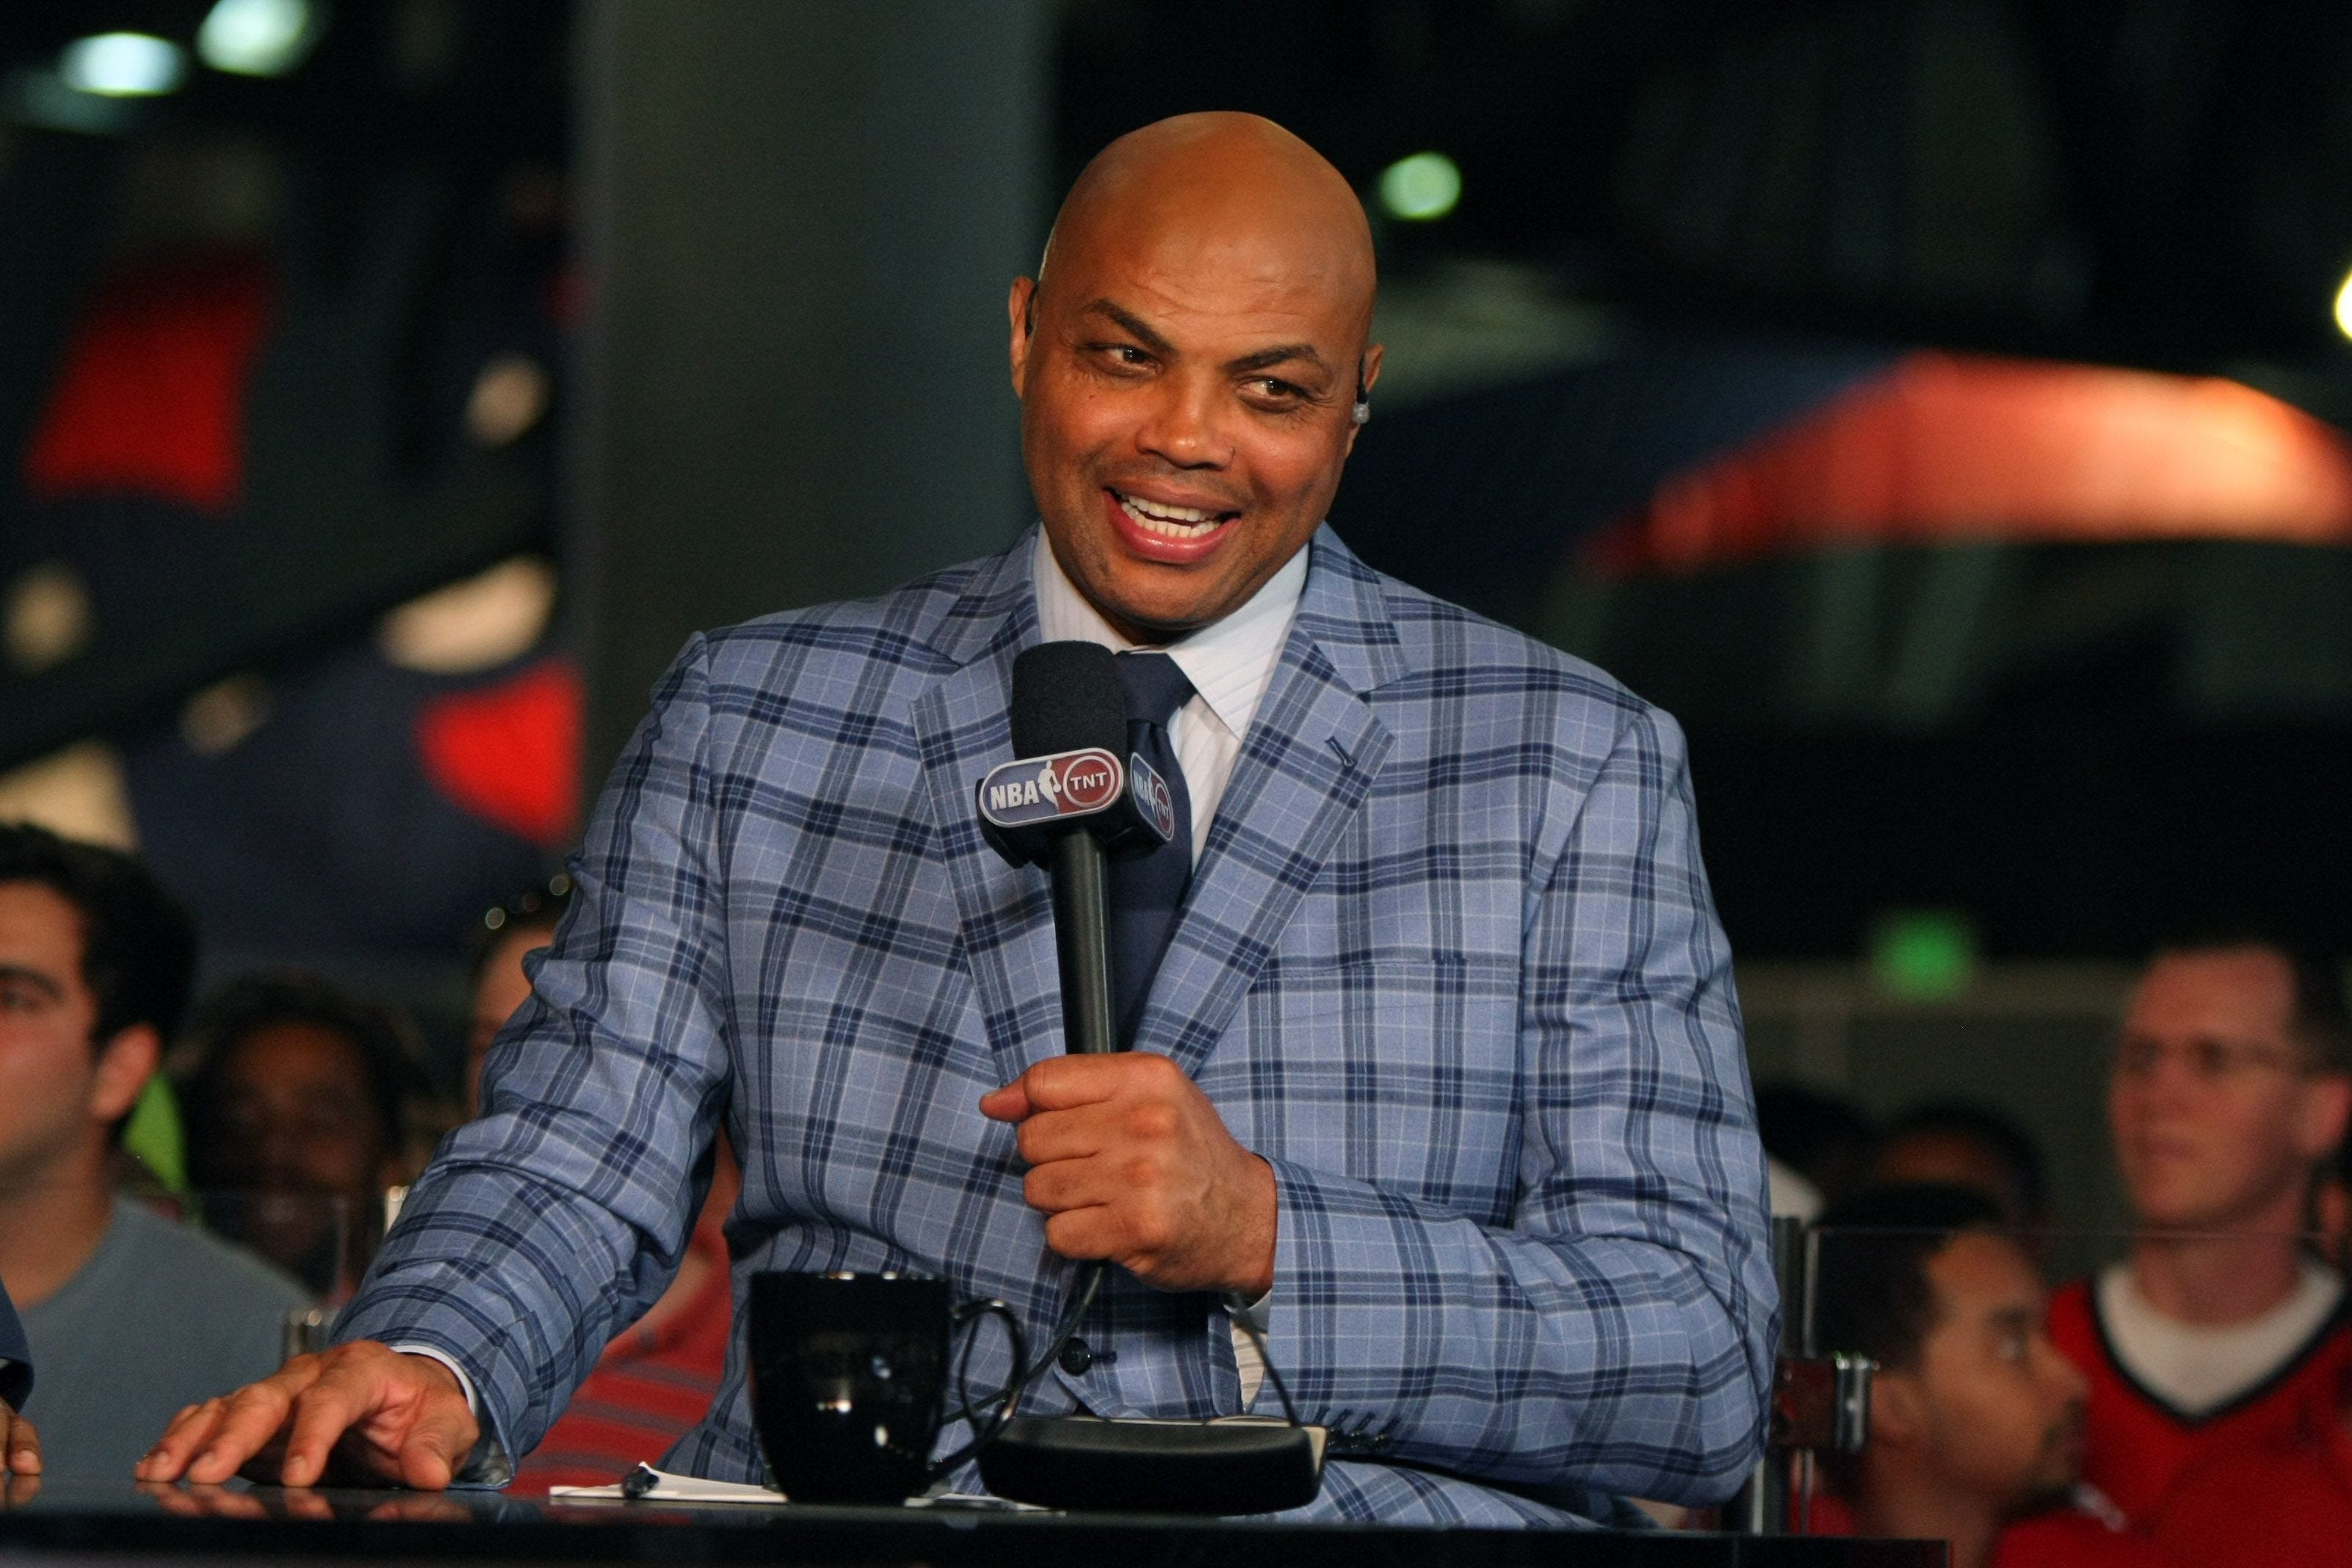 NHL fan Charles Barkley on playoff topics: If someone licks you, 'you've got to punch him'